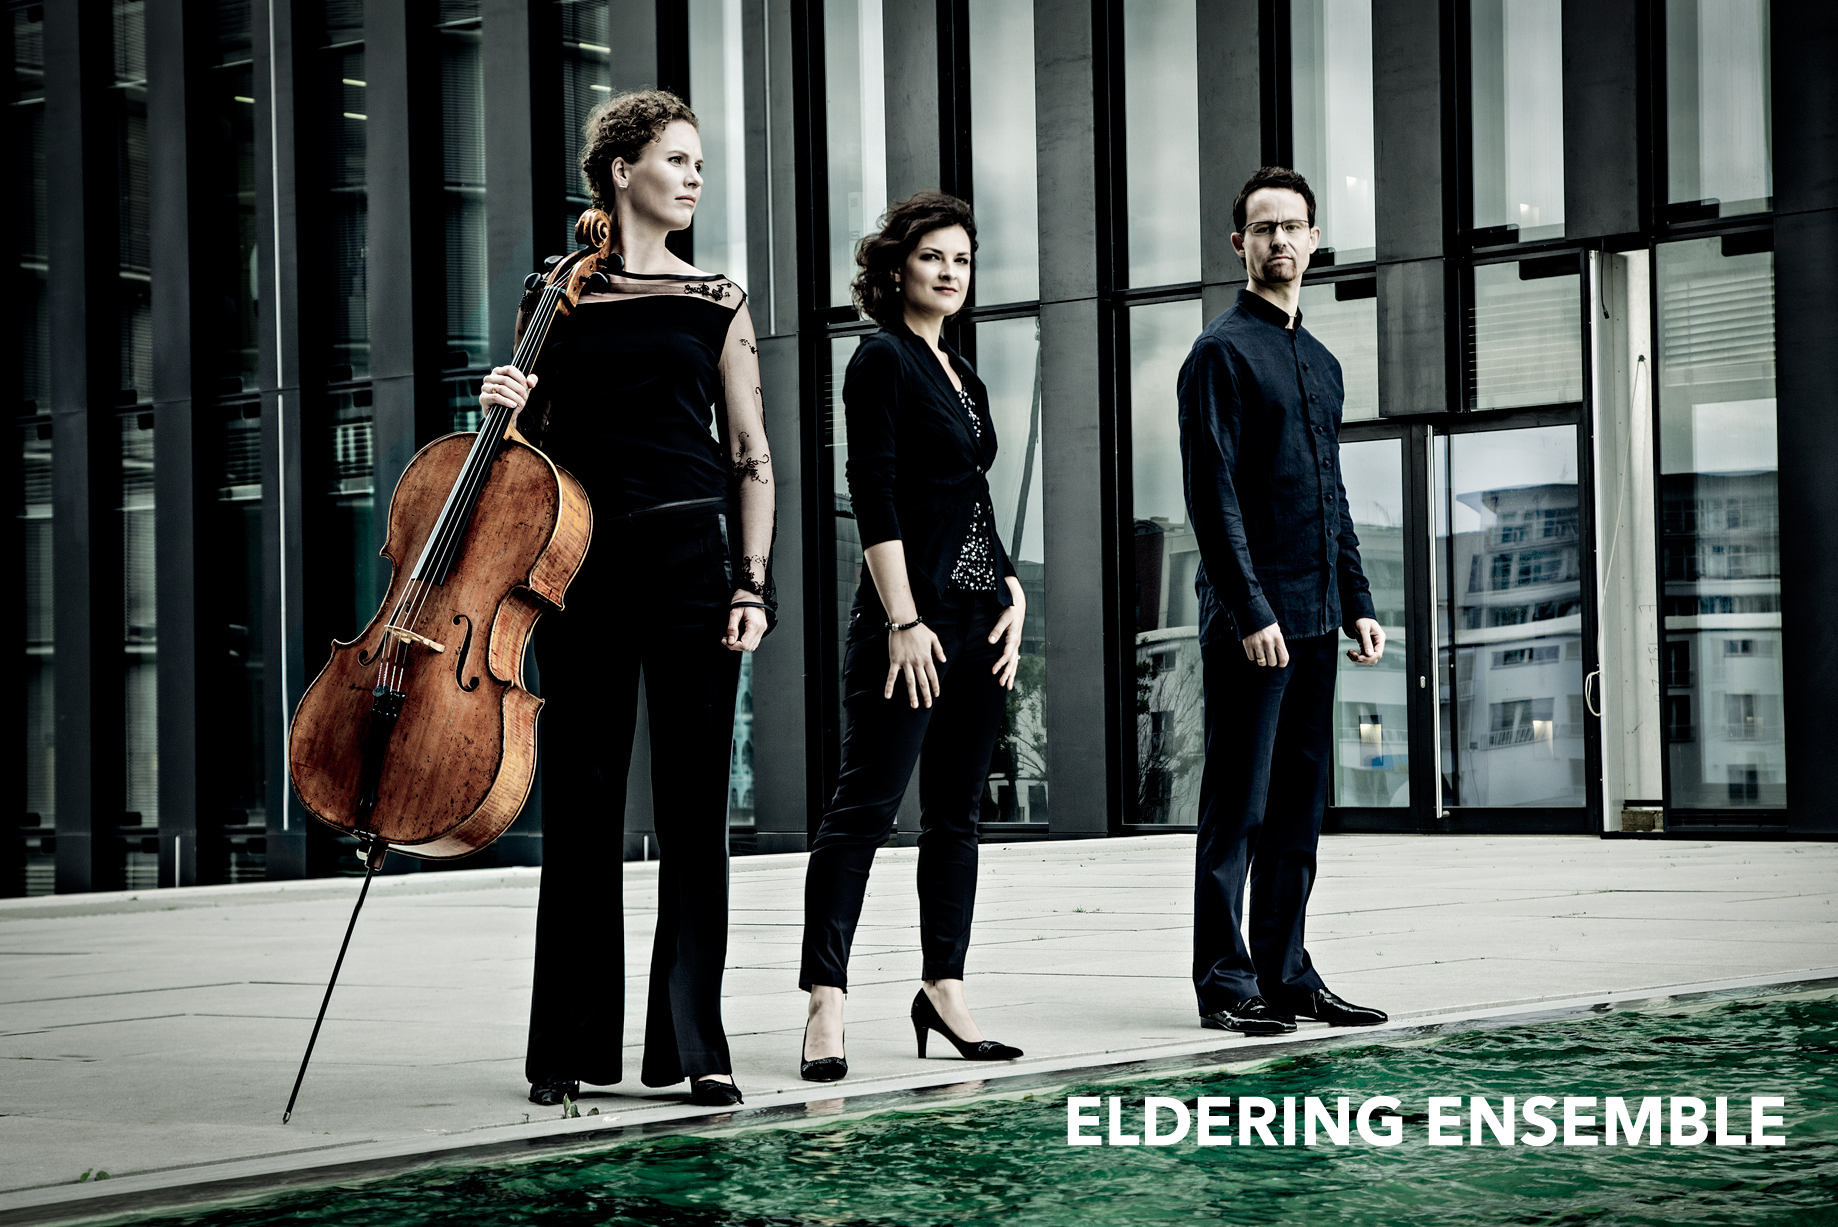 Eldering Ensemble